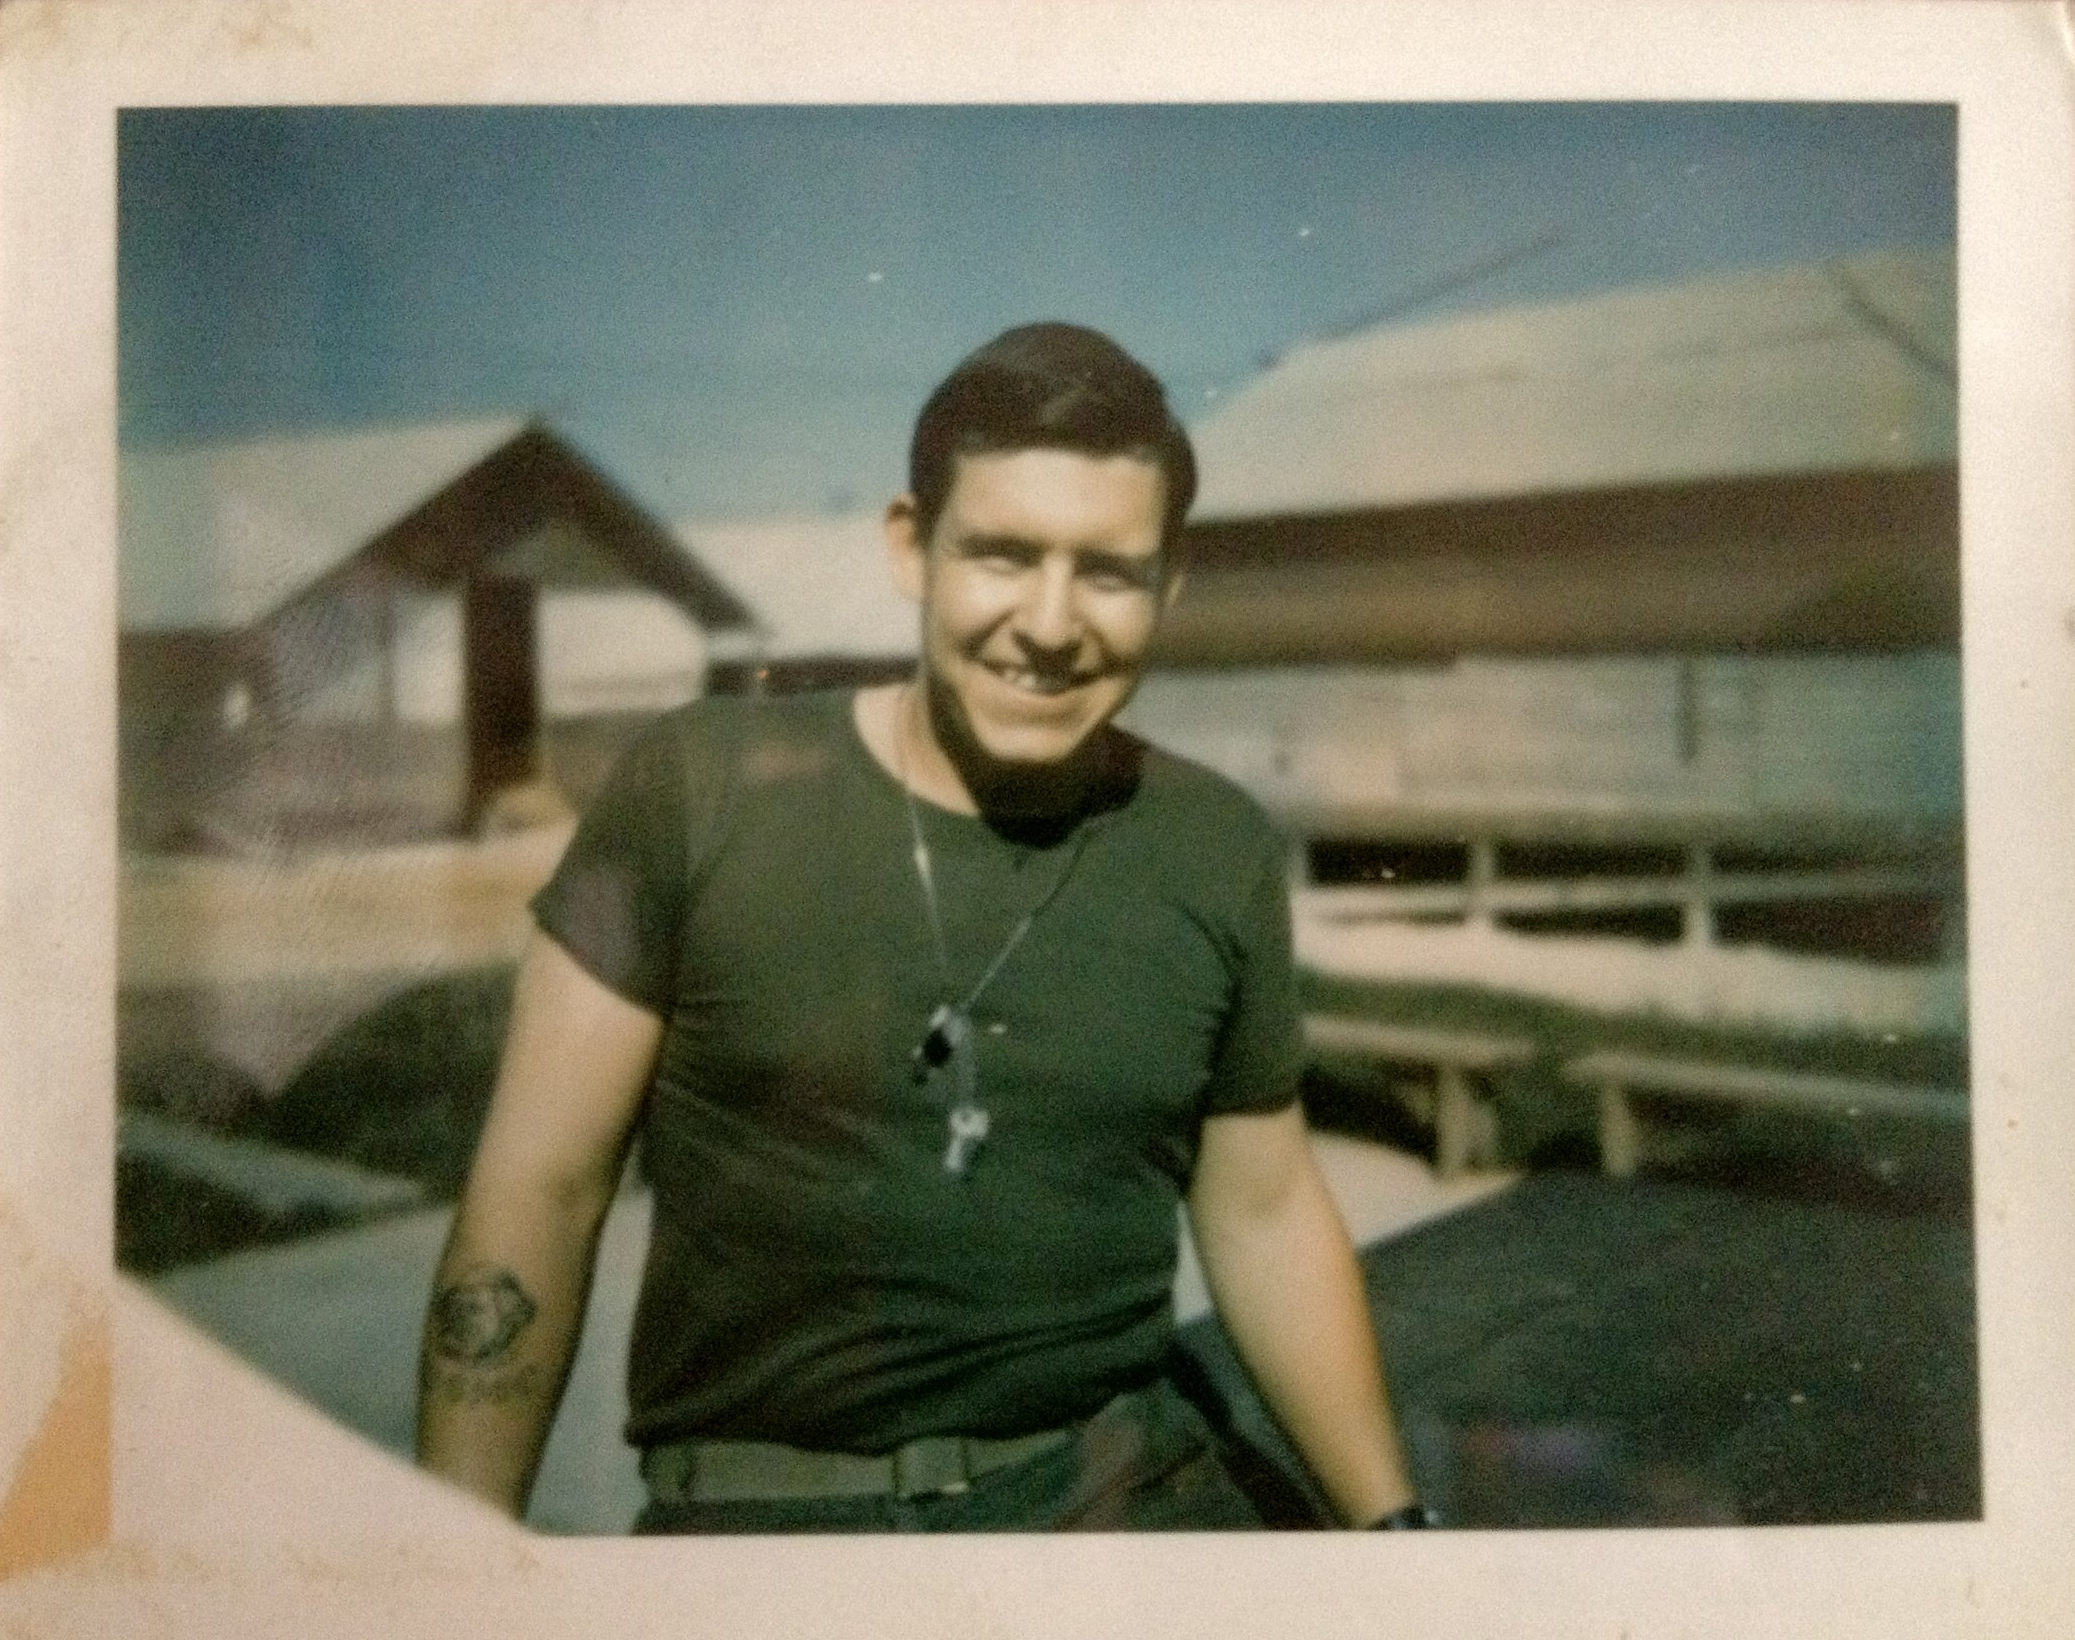 My dad, Dennis, in Vietnam, in 1968; about 50 years ago now...